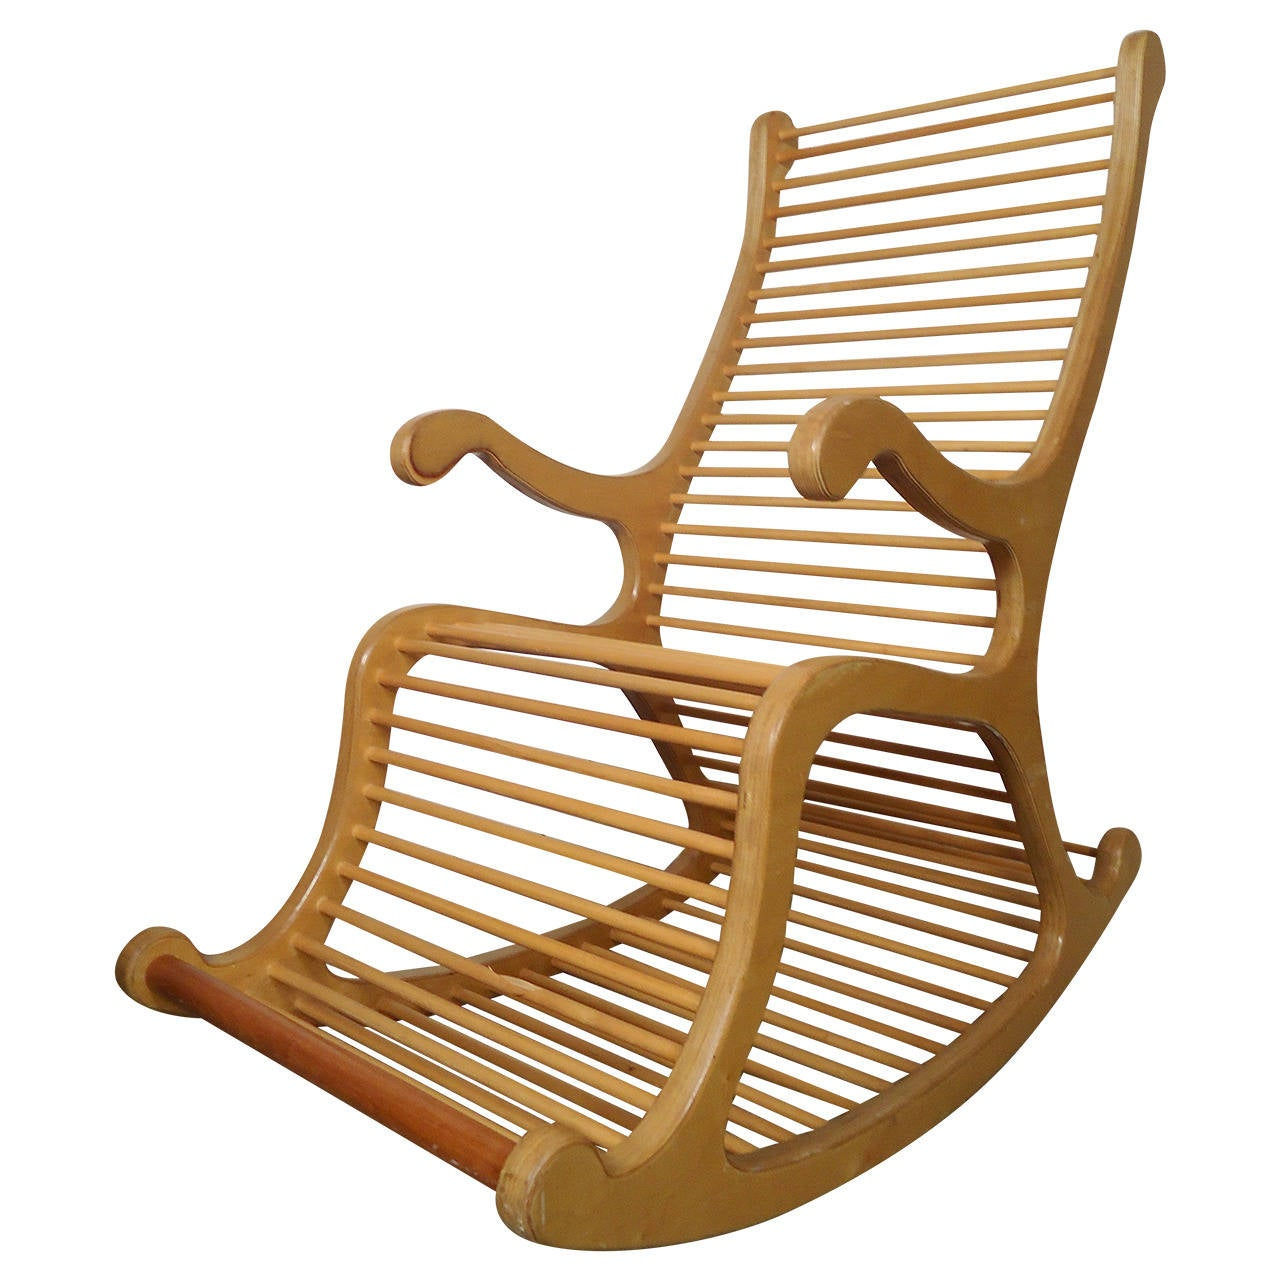 Wood Rocking Chairs For Sale Design Home Interior Design